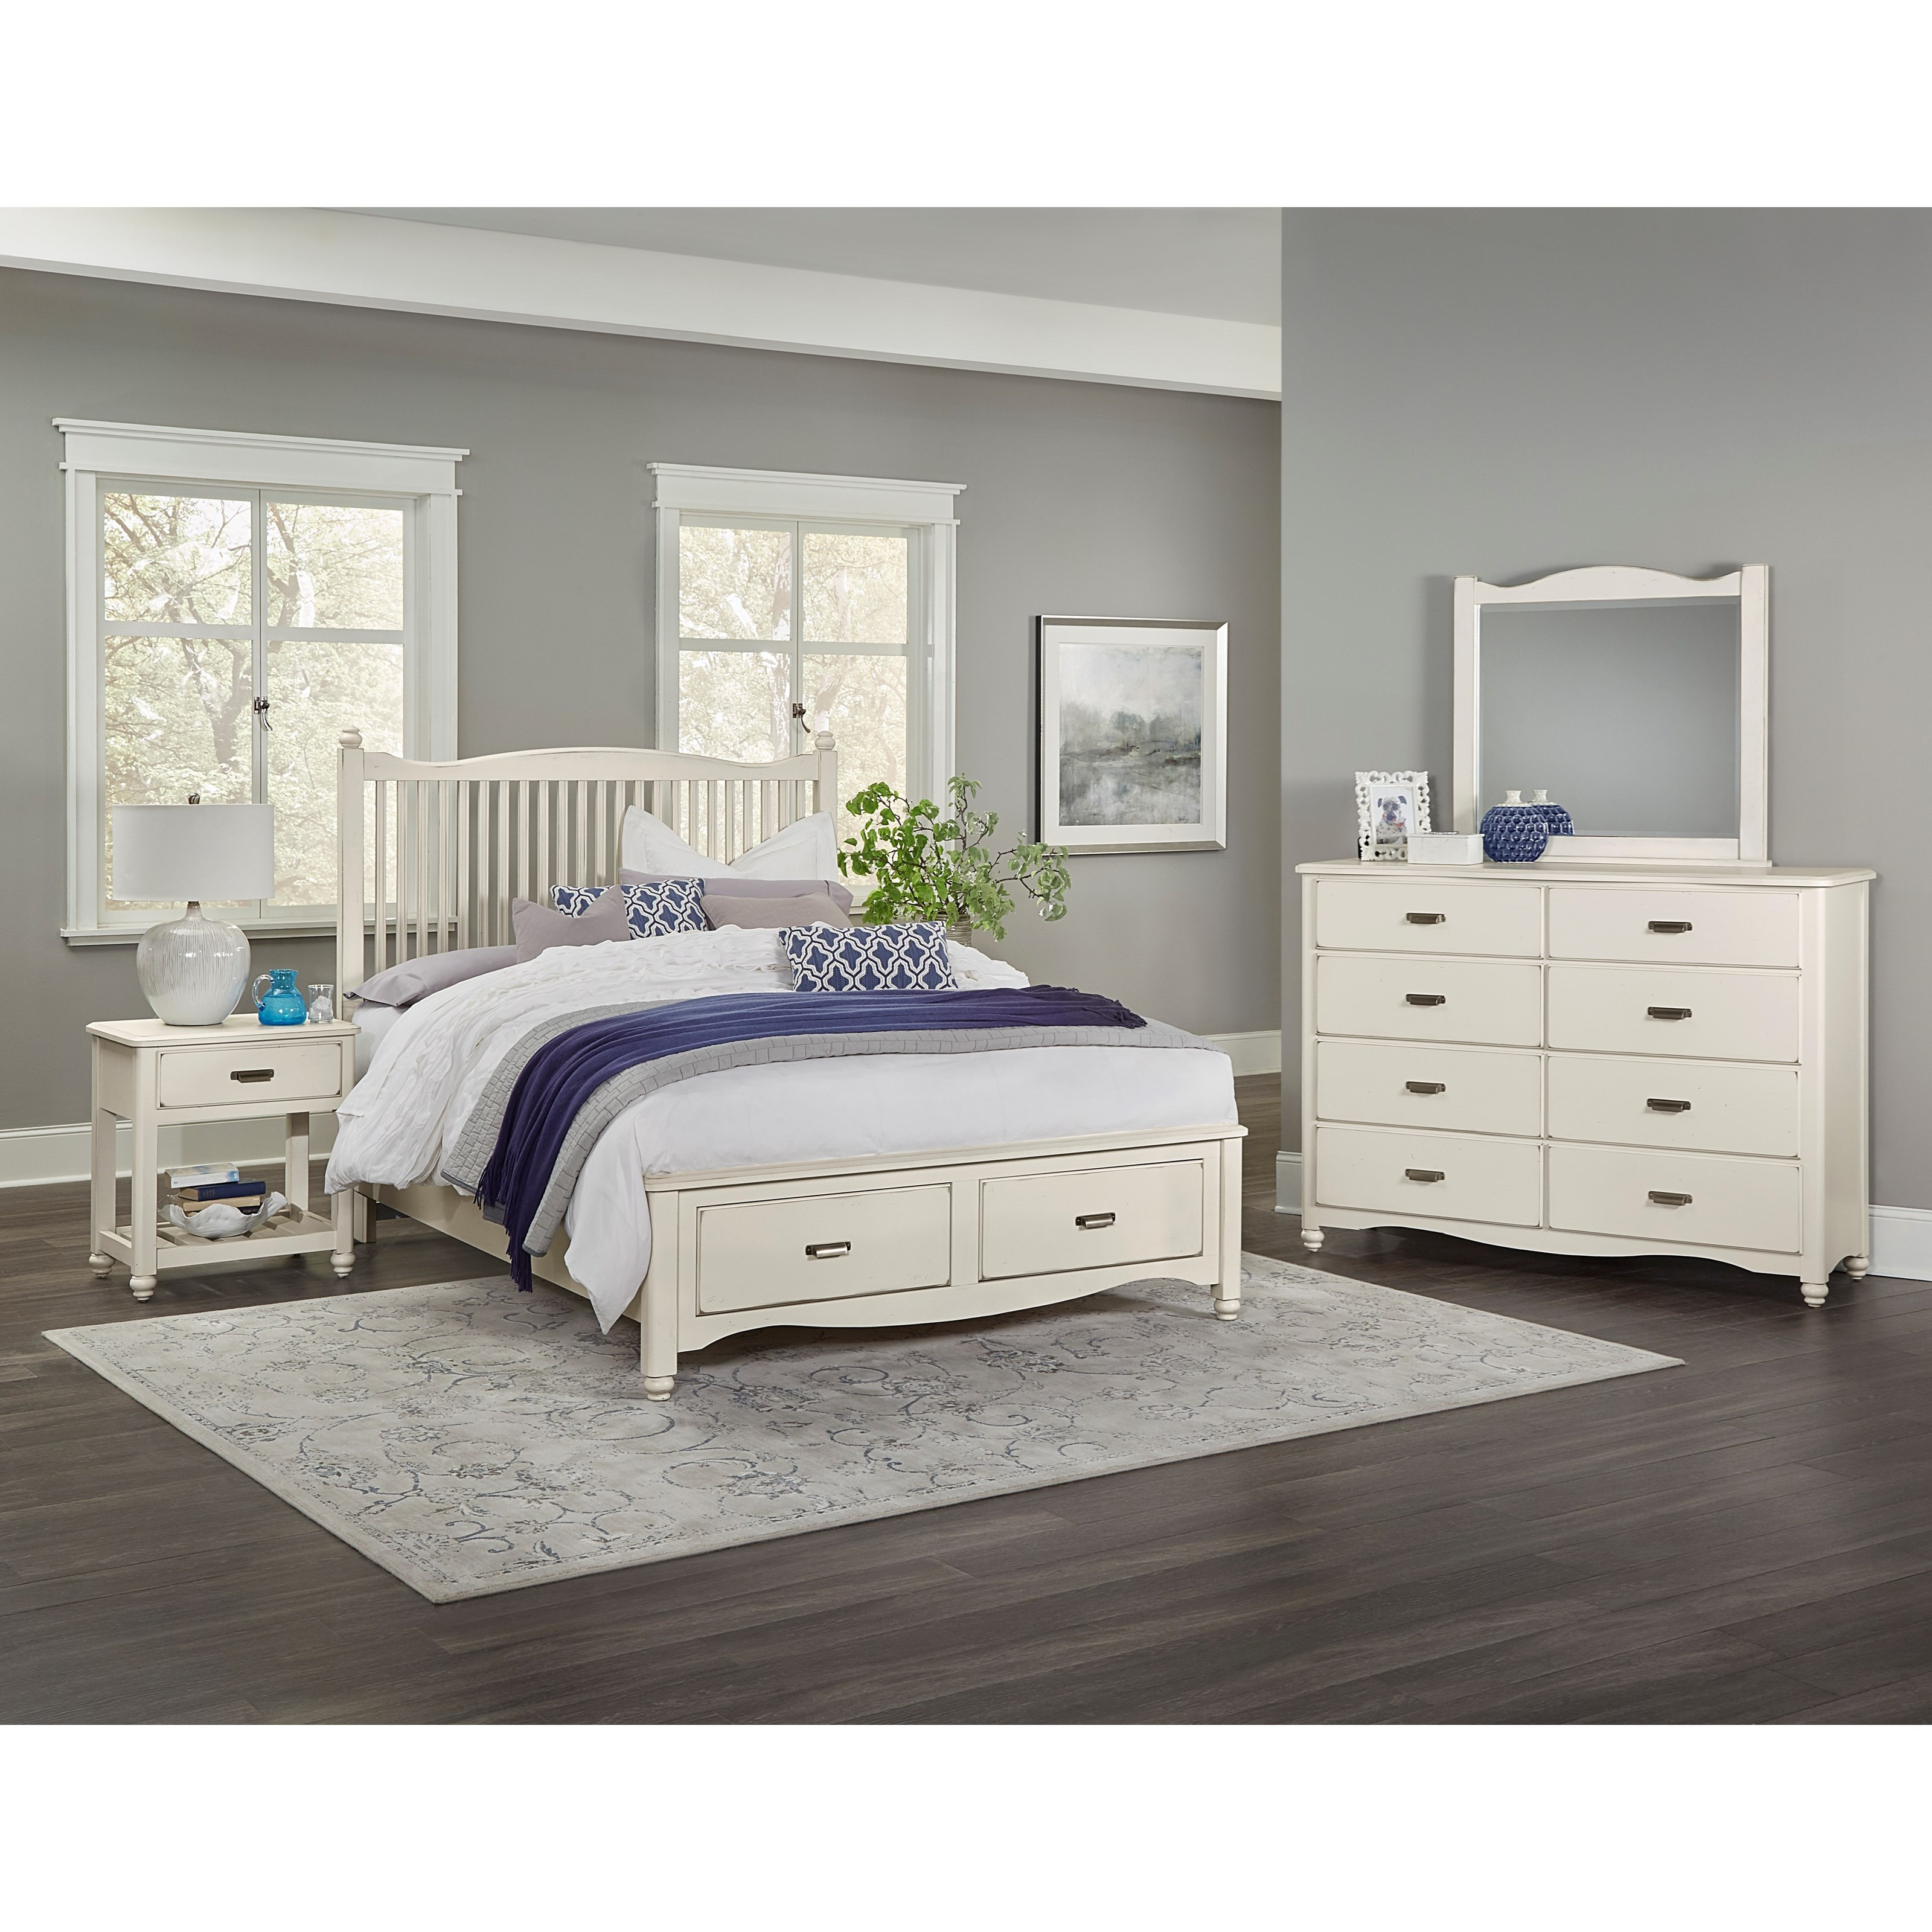 Vaughan Bassett American Maple King Bedroom Group - Item Number: 404 K Bedroom Group 3